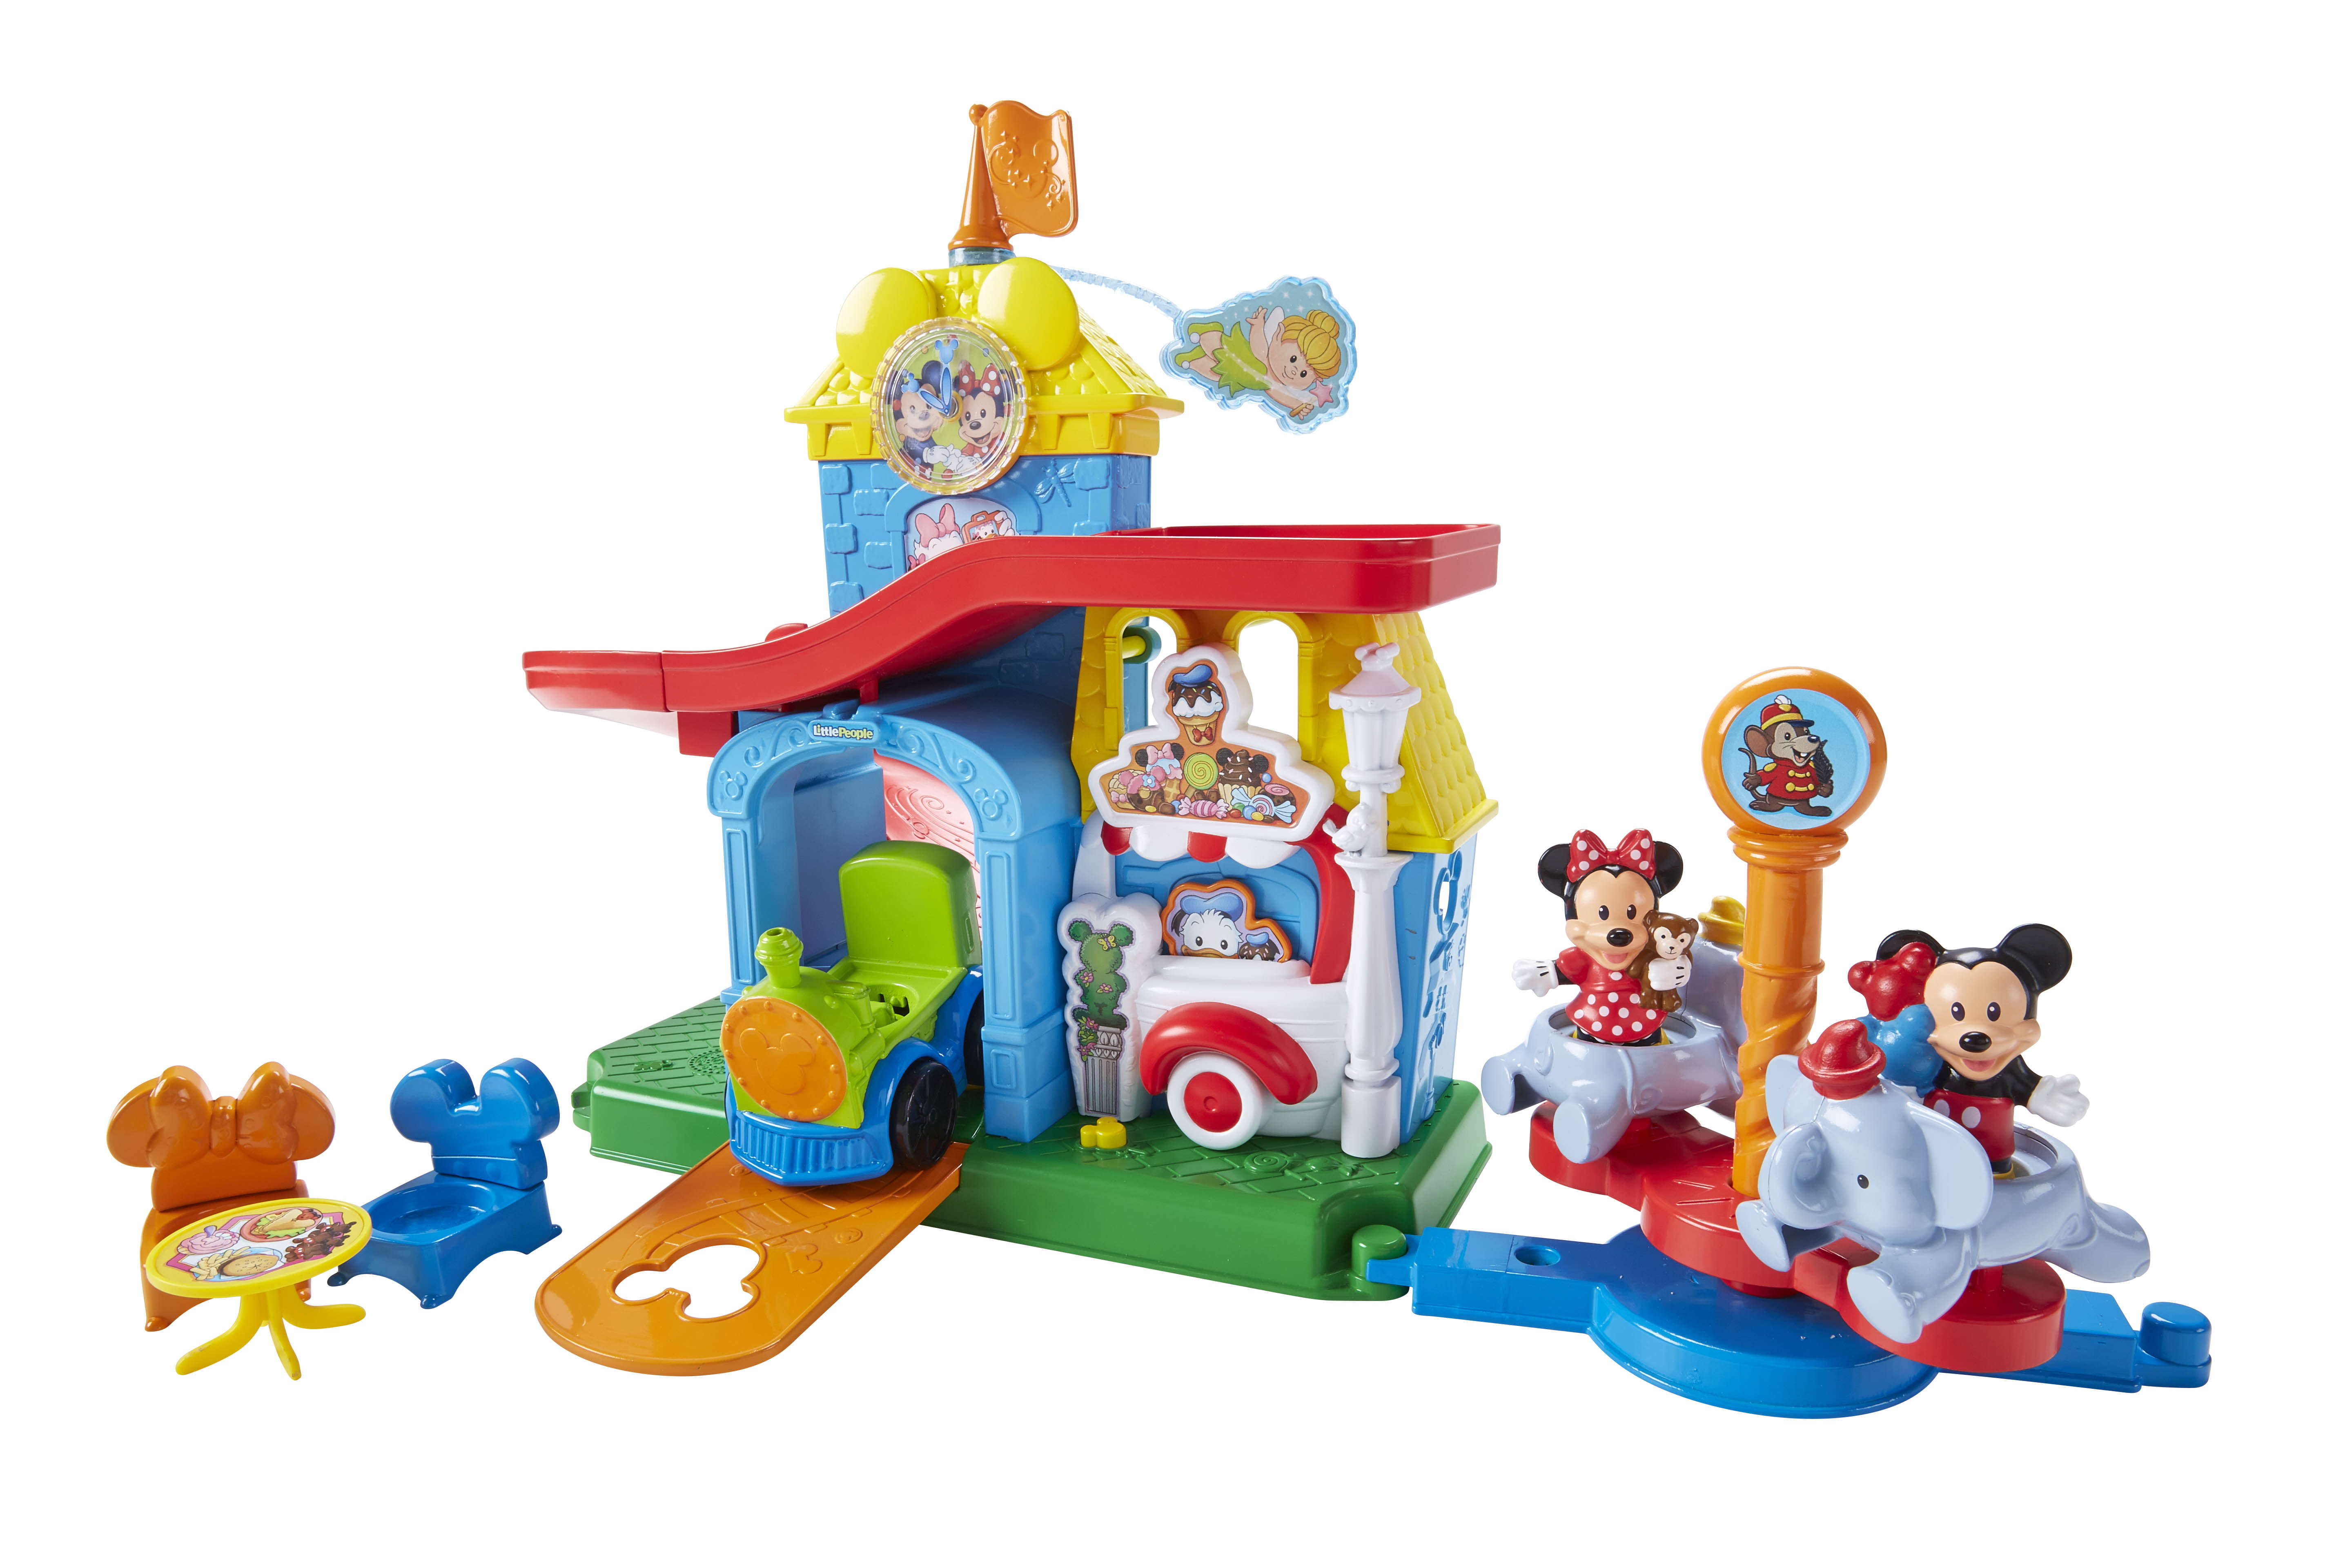 Fisher Price Little People Magical Day at Disney Playset by FISHER PRICE